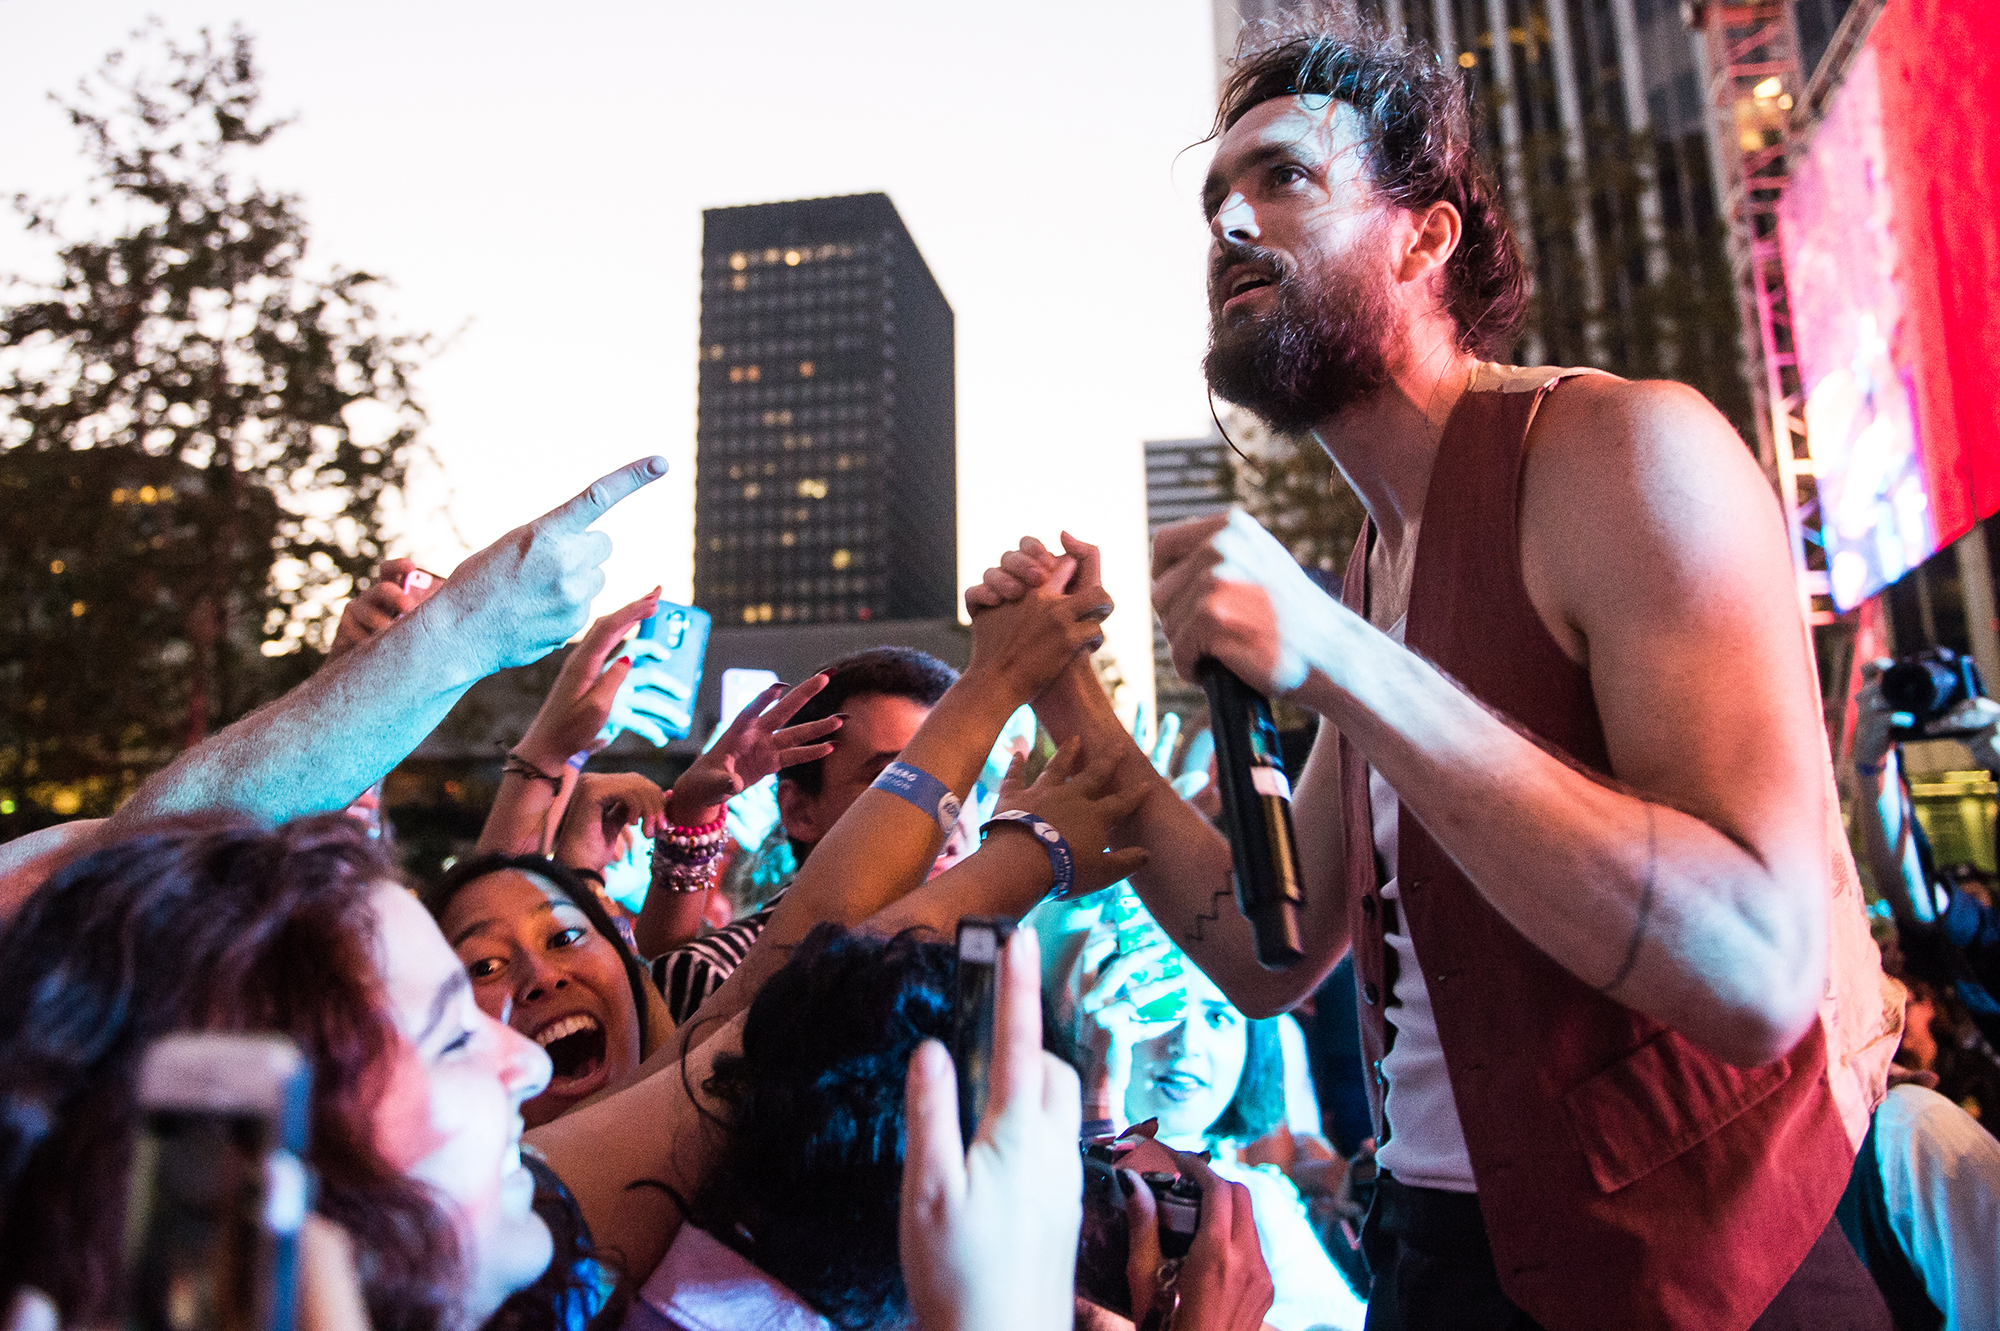 Edward Sharpe, Sound in Focus